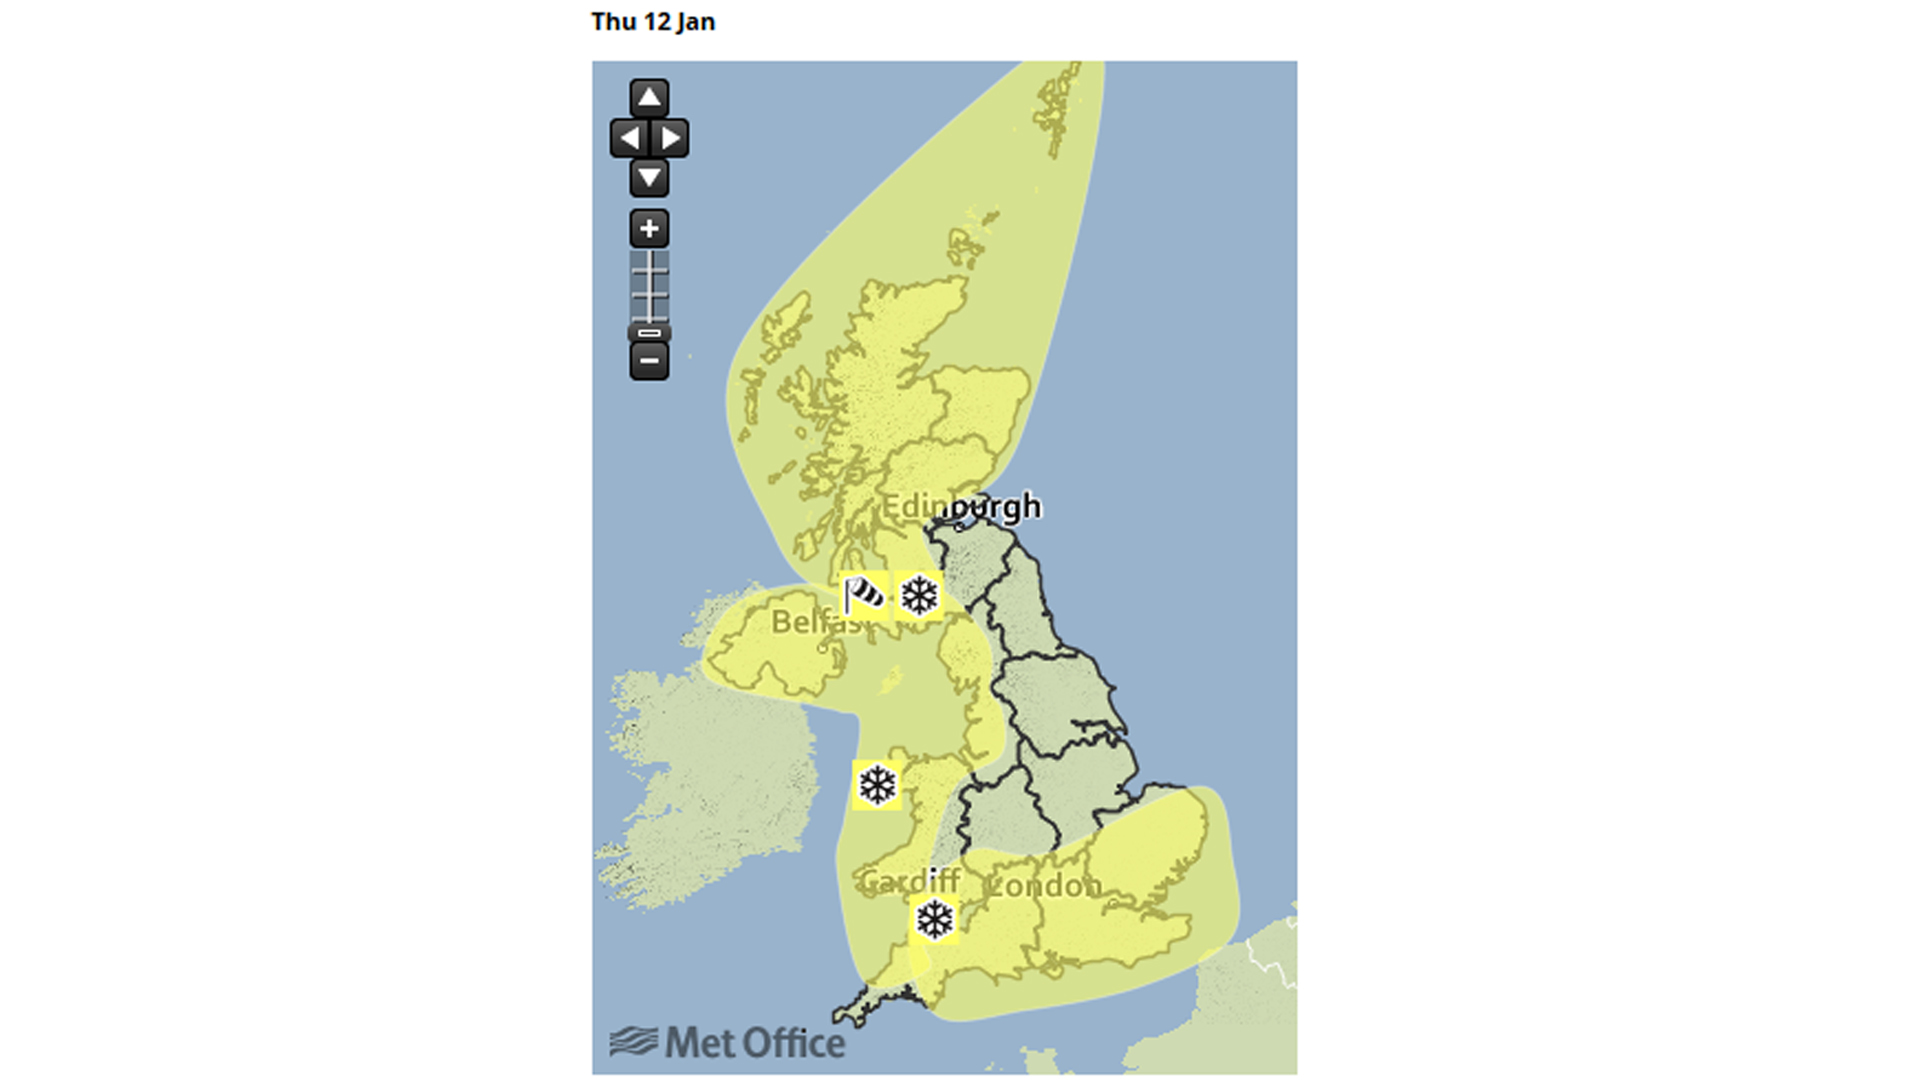 Met Office snow warnings for Thursday